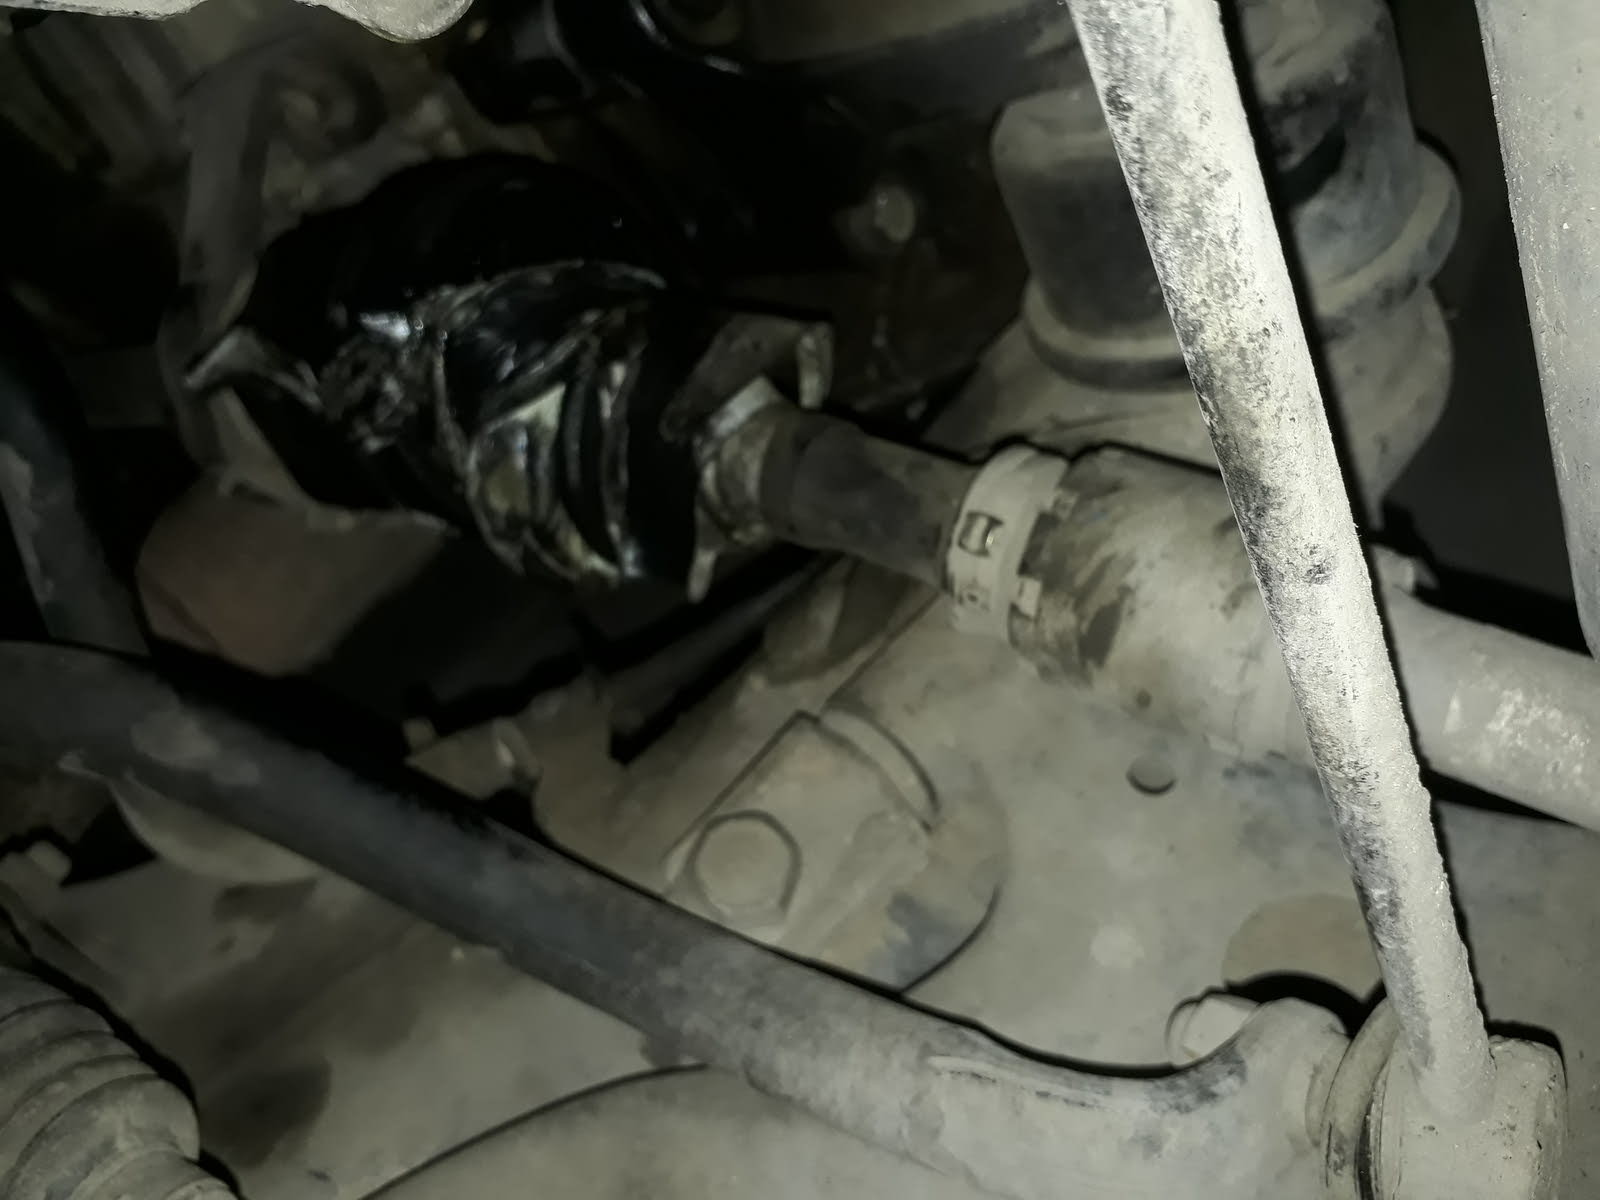 Toyota Camry Questions - Right CV AXLE SHAFT- 1998 Toyota Camry